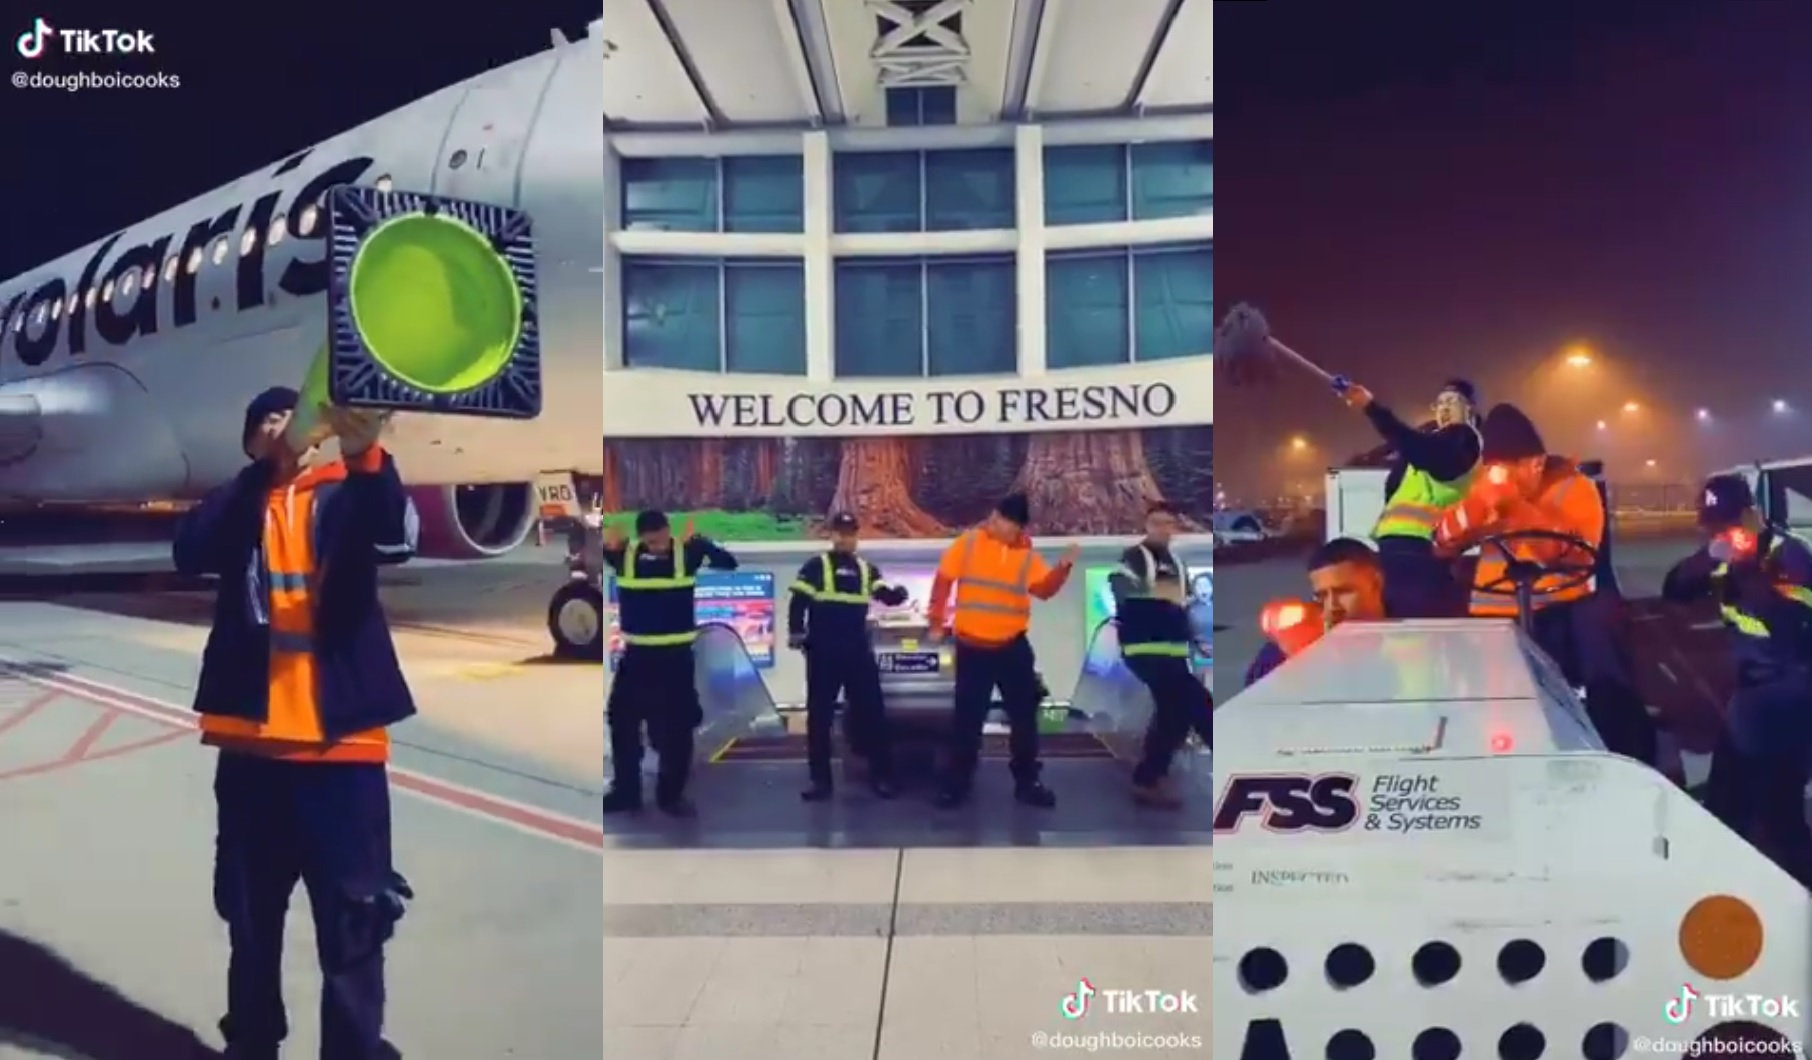 Viral video shows Fresno Yosemite Airport workers dancing at work.